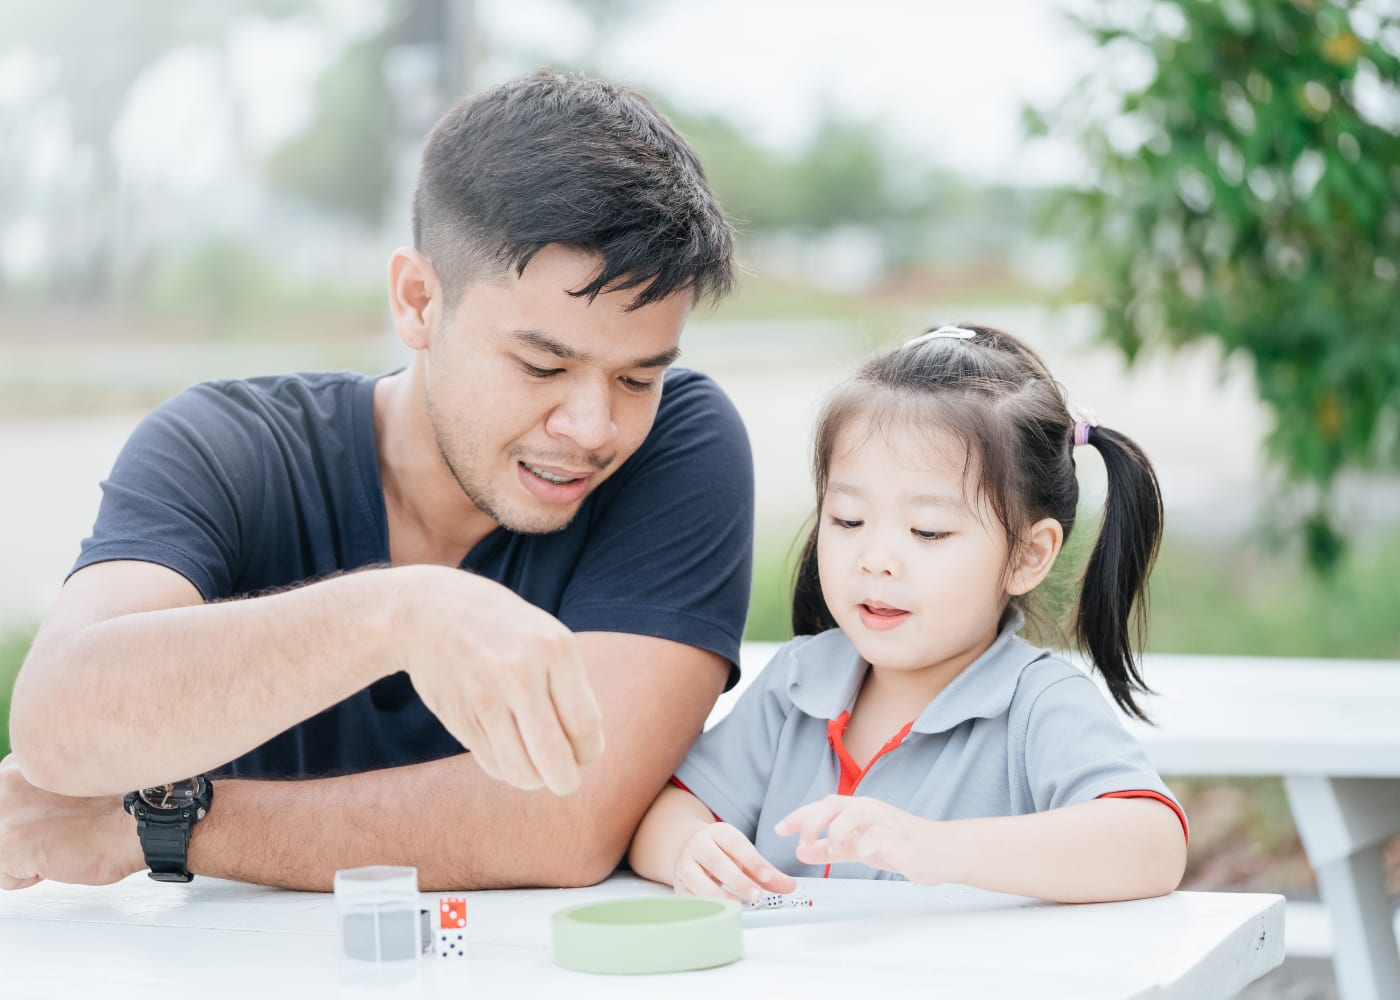 Fostering in Singapore: How to support children in need